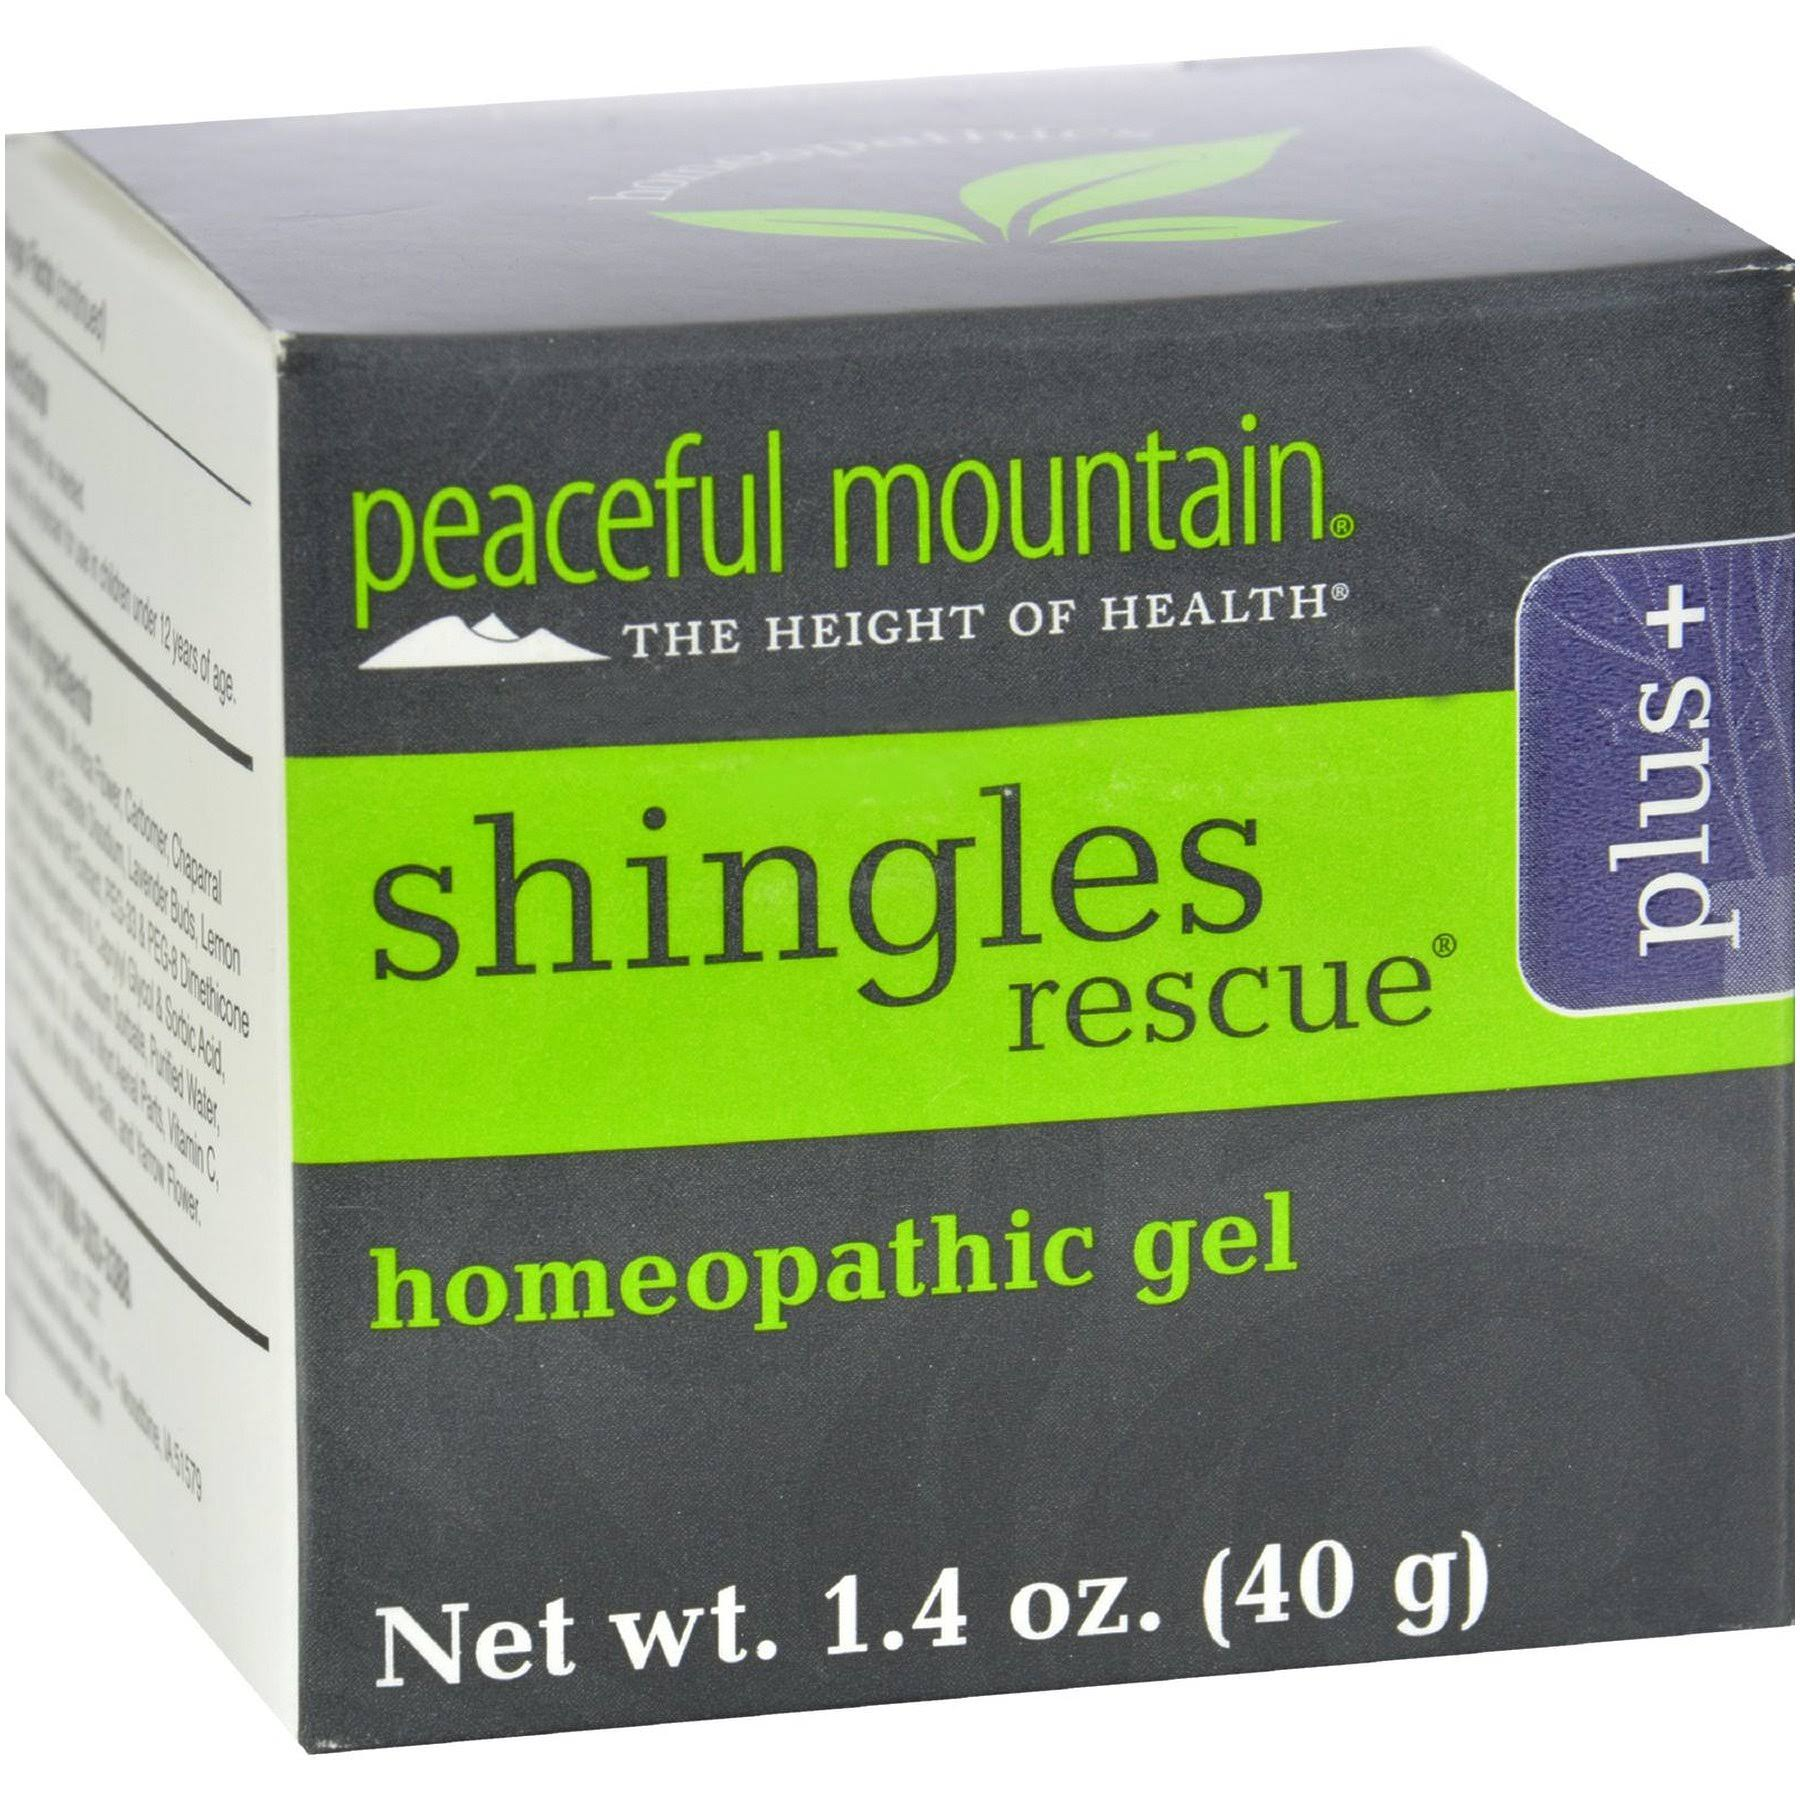 Peaceful Mountain Shingles Rescue Plus Extra Strength Homeopathic Gel - 1.4oz